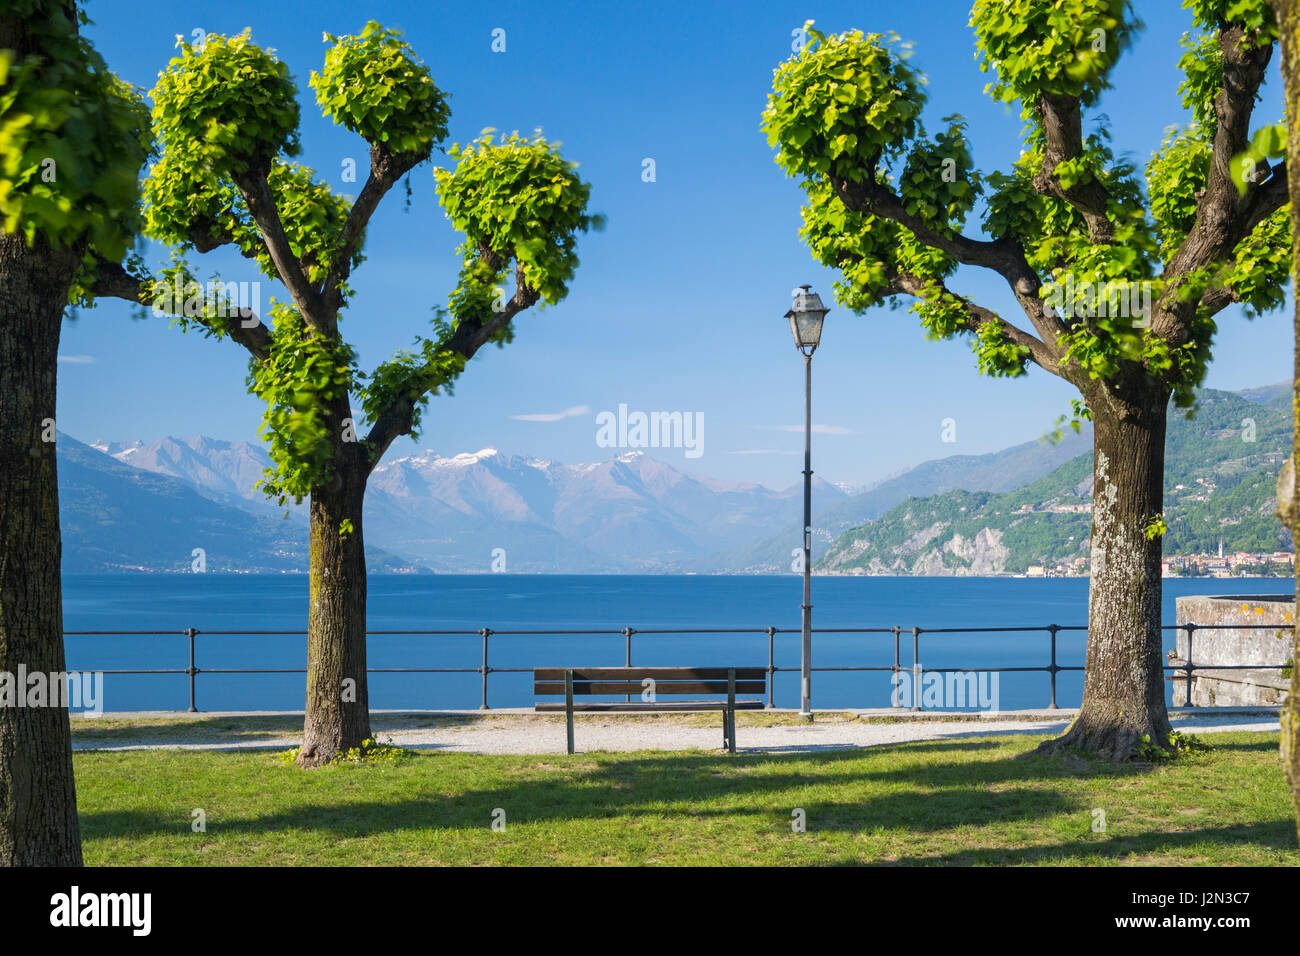 pollarded Plane trees along tree lined waterfront at Bellagio, Lake Como, Italy in April Stock Photo